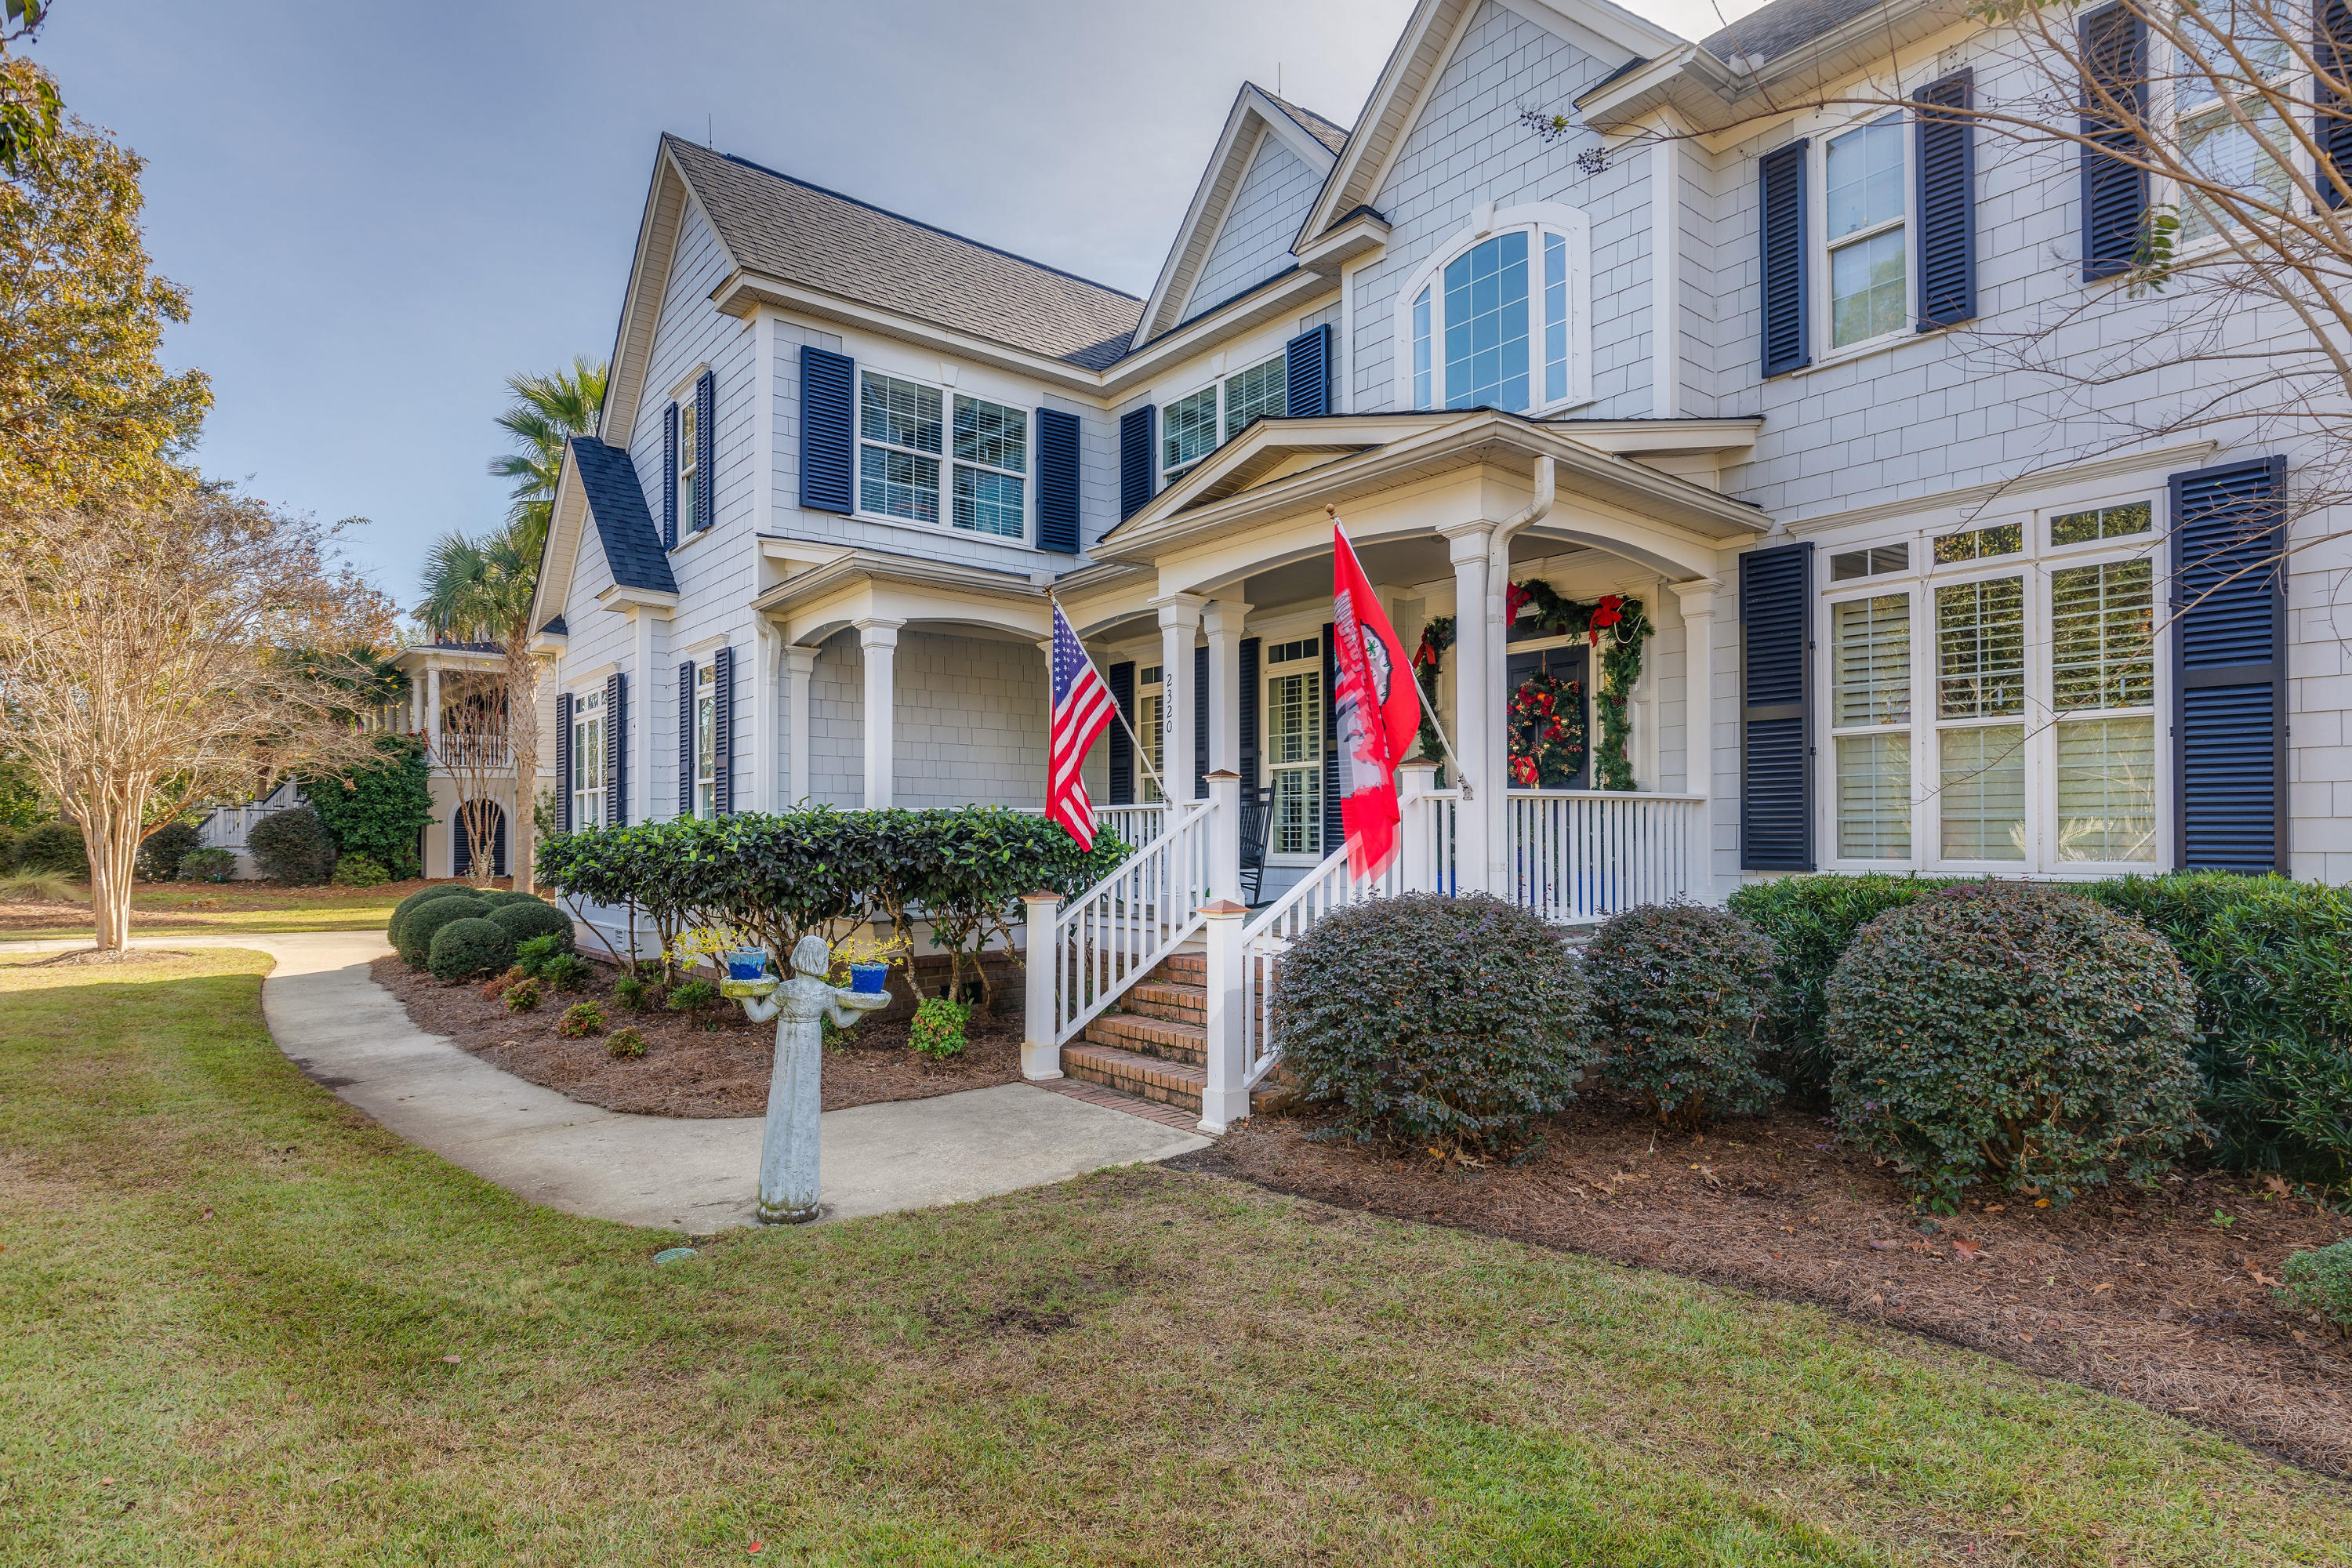 Dunes West Homes For Sale - 2320 Darts Cove, Mount Pleasant, SC - 53